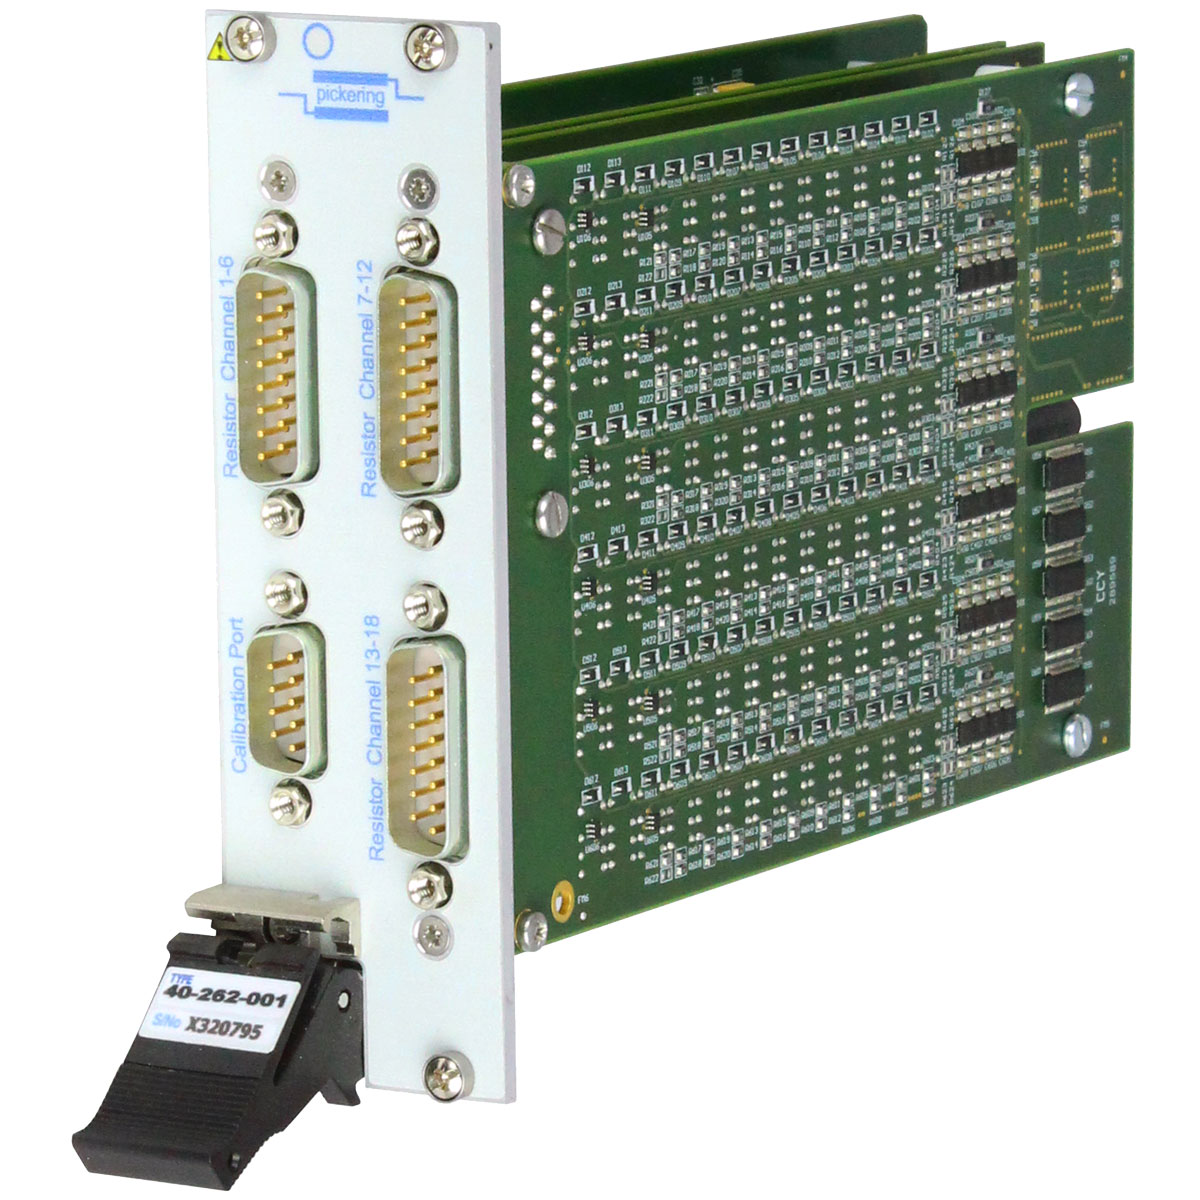 Pxi Rtd Simulator Module 18 Channel Pt100 40 262 001 At Pc Power Supply 1 Electronic Circuit By Levone